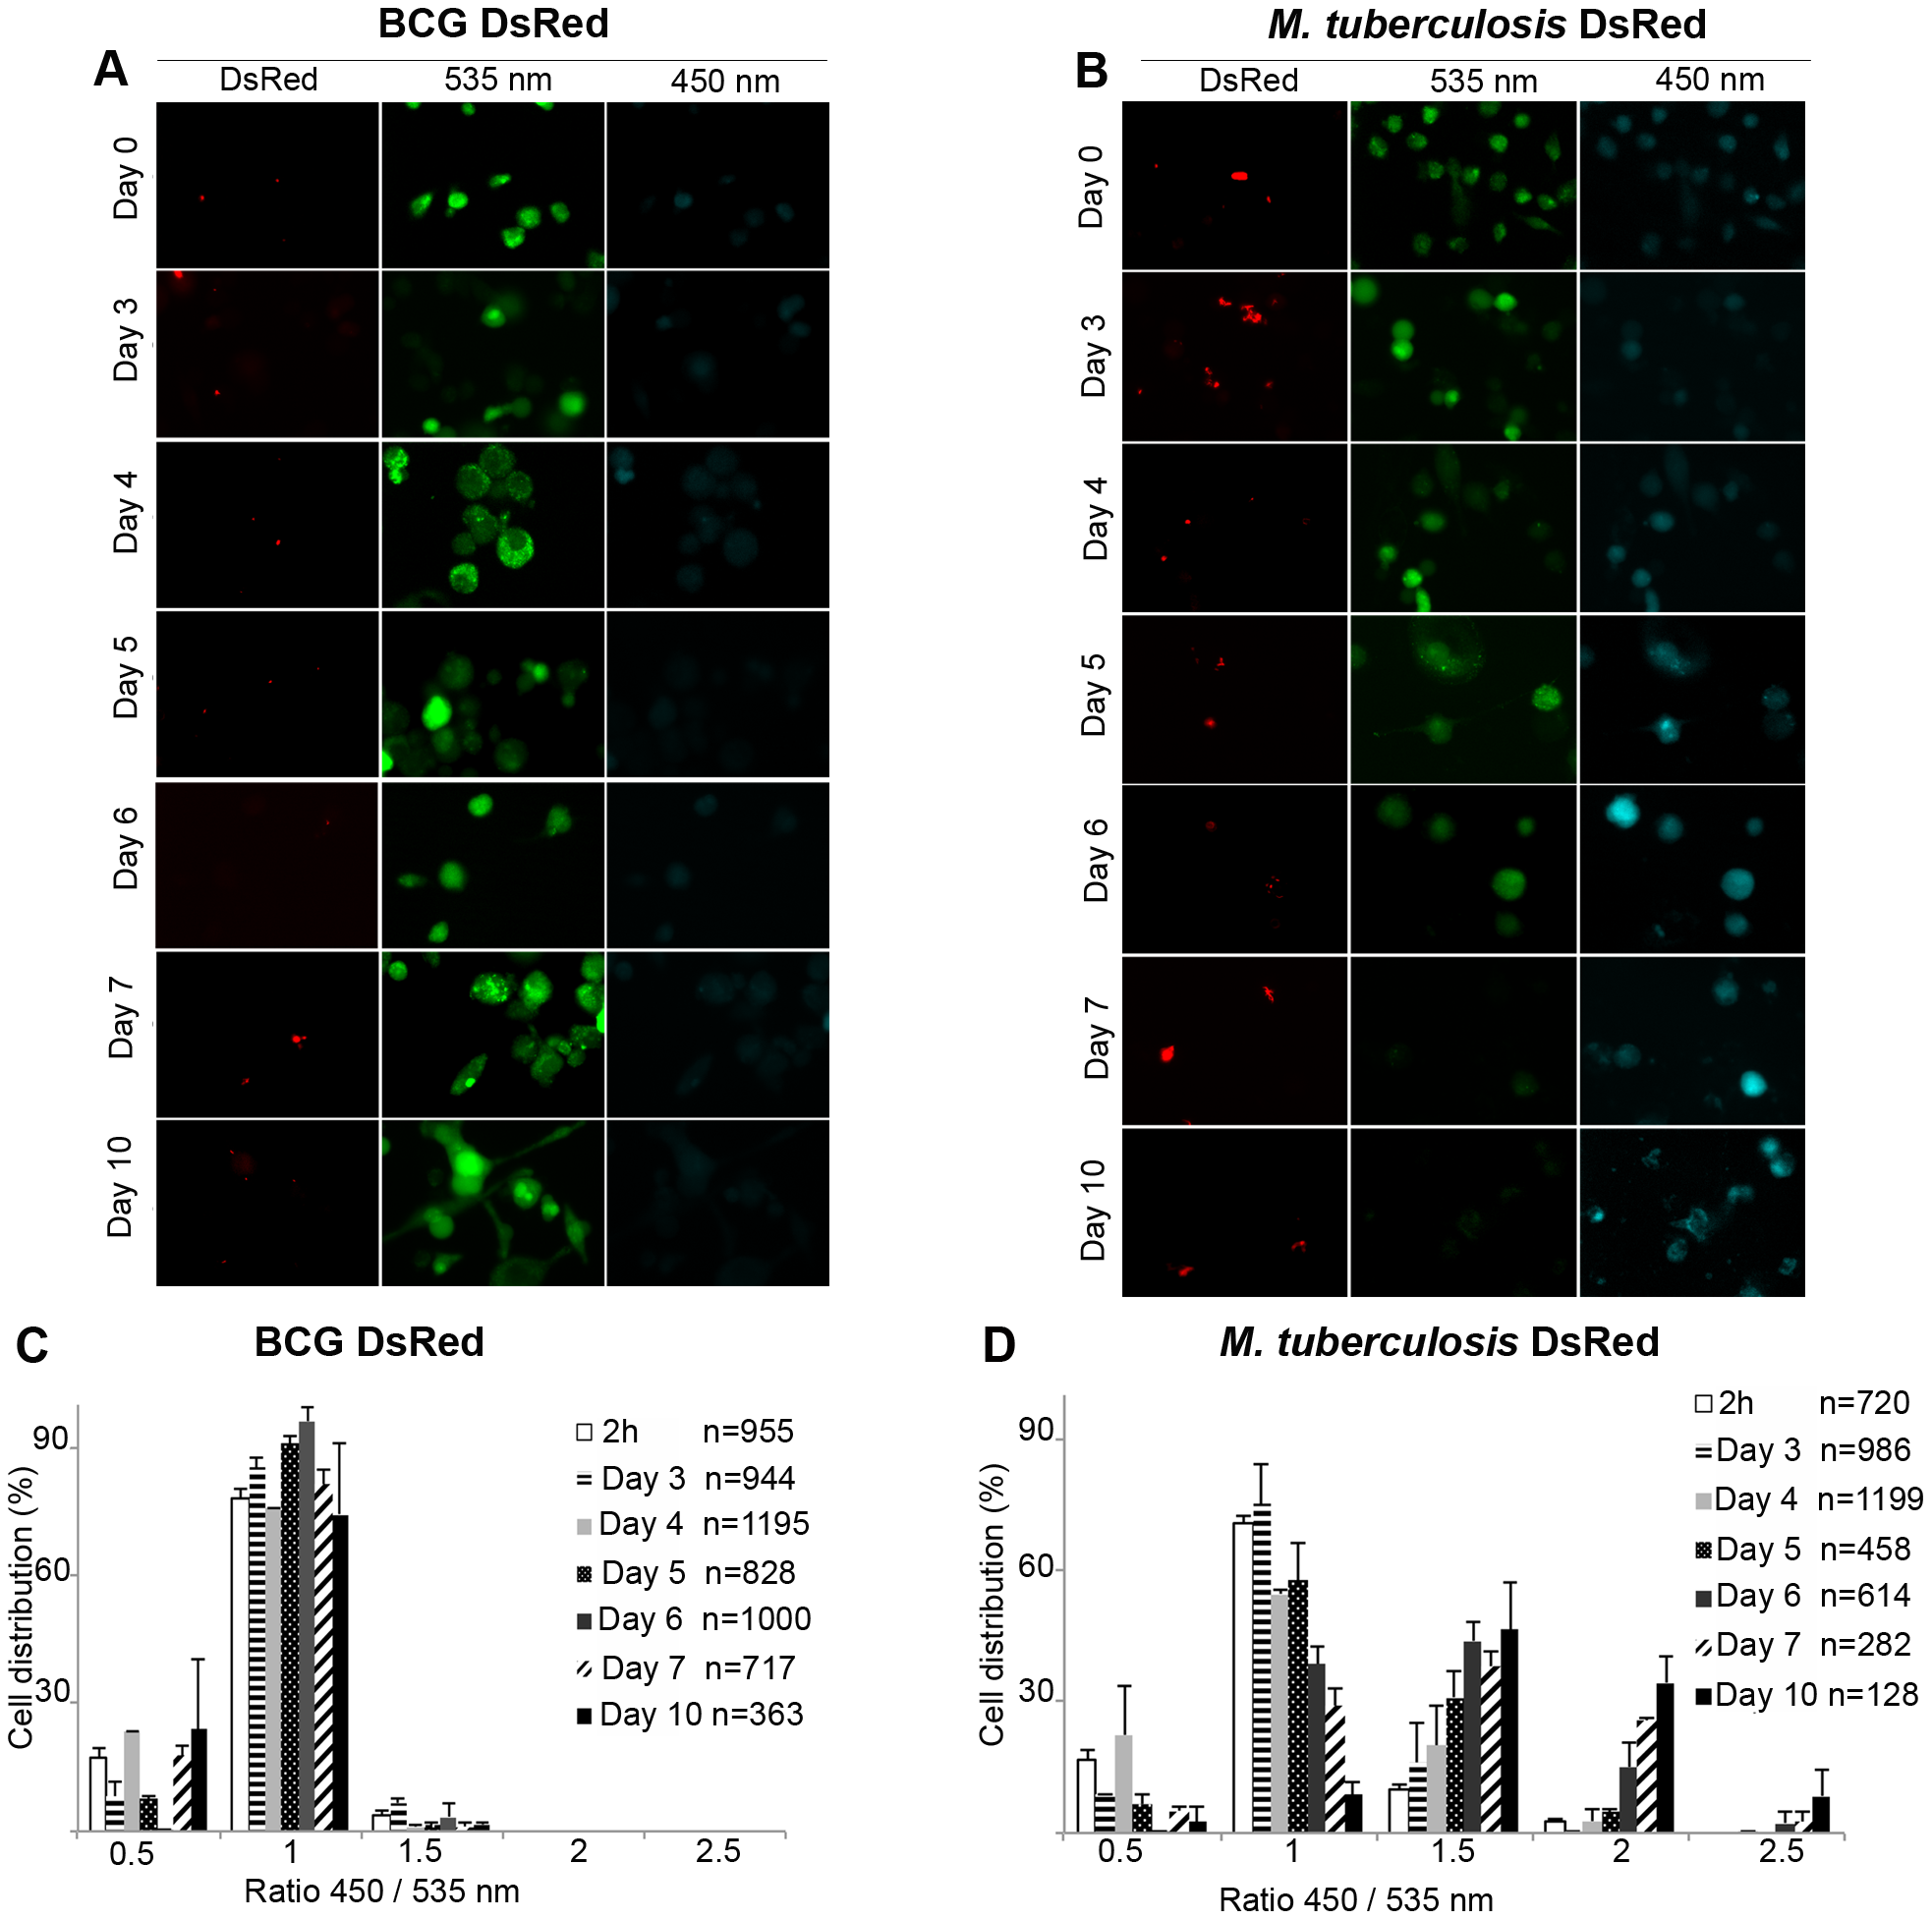 Unlike the attenuated BCG vaccine, virulent <i>M. tuberculosis</i> is able to induce phagosomal rupture in THP-1 macrophages.